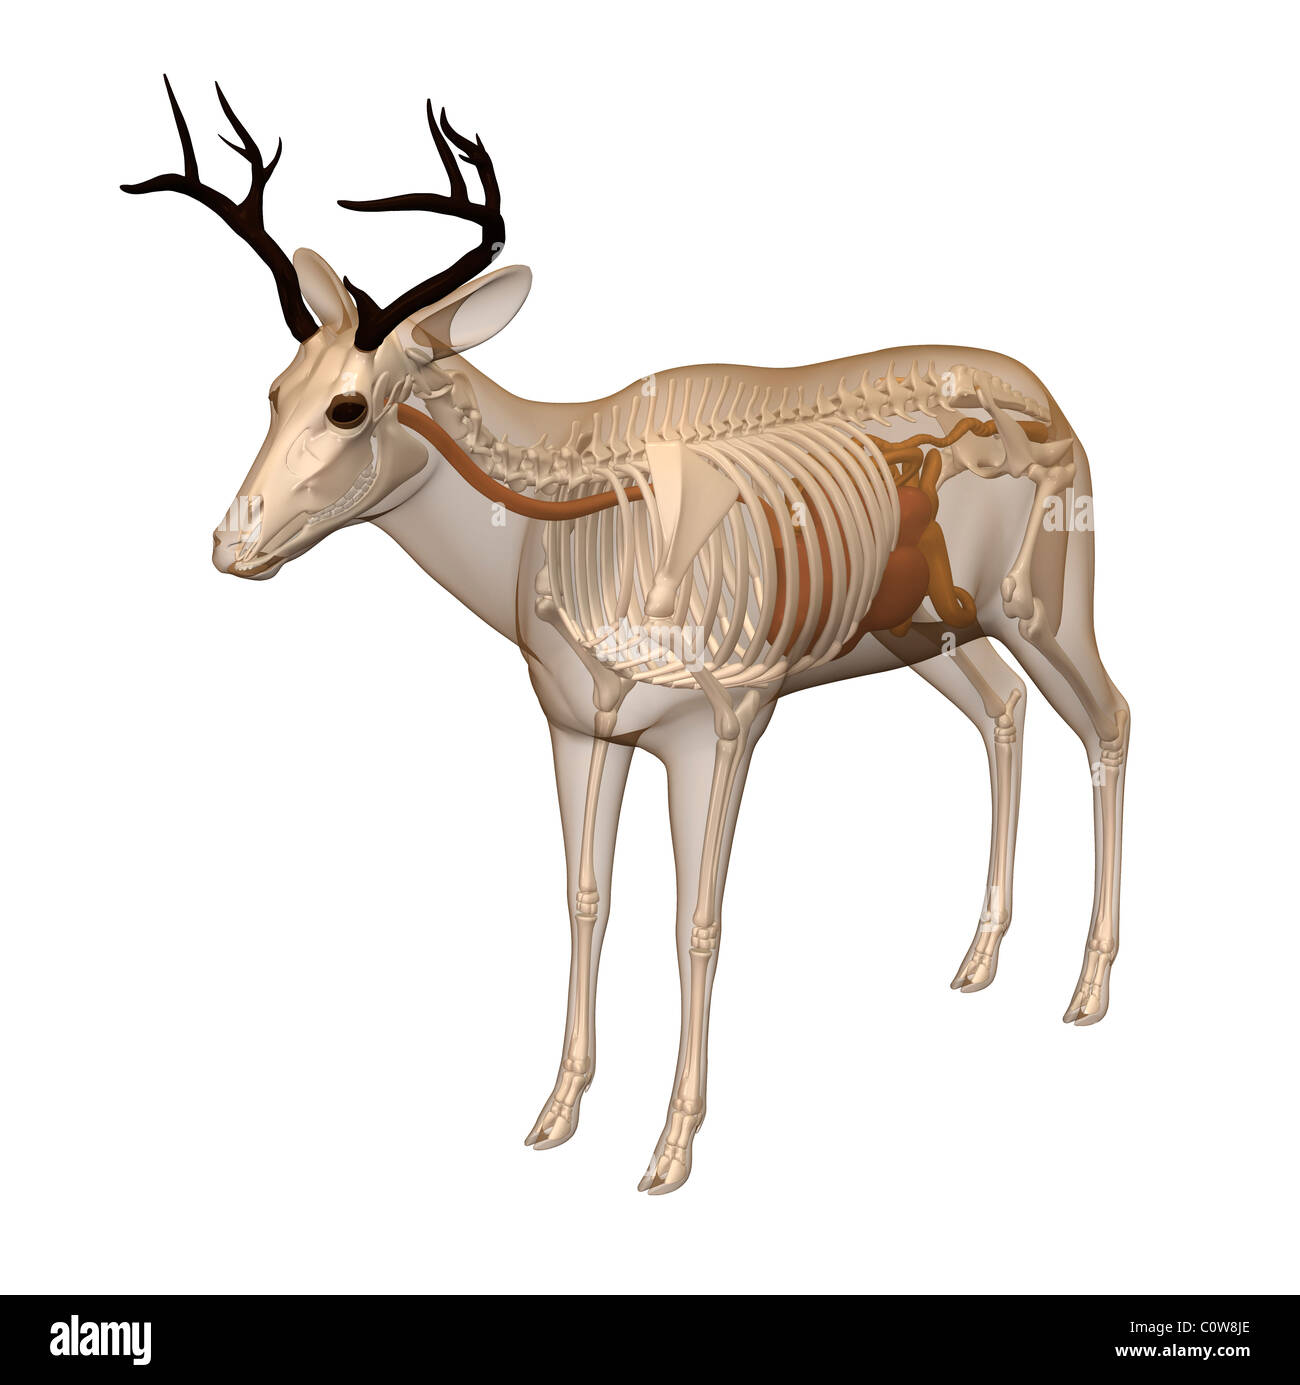 deer anatomy digestion skeleton transparent body Stock Photo ...